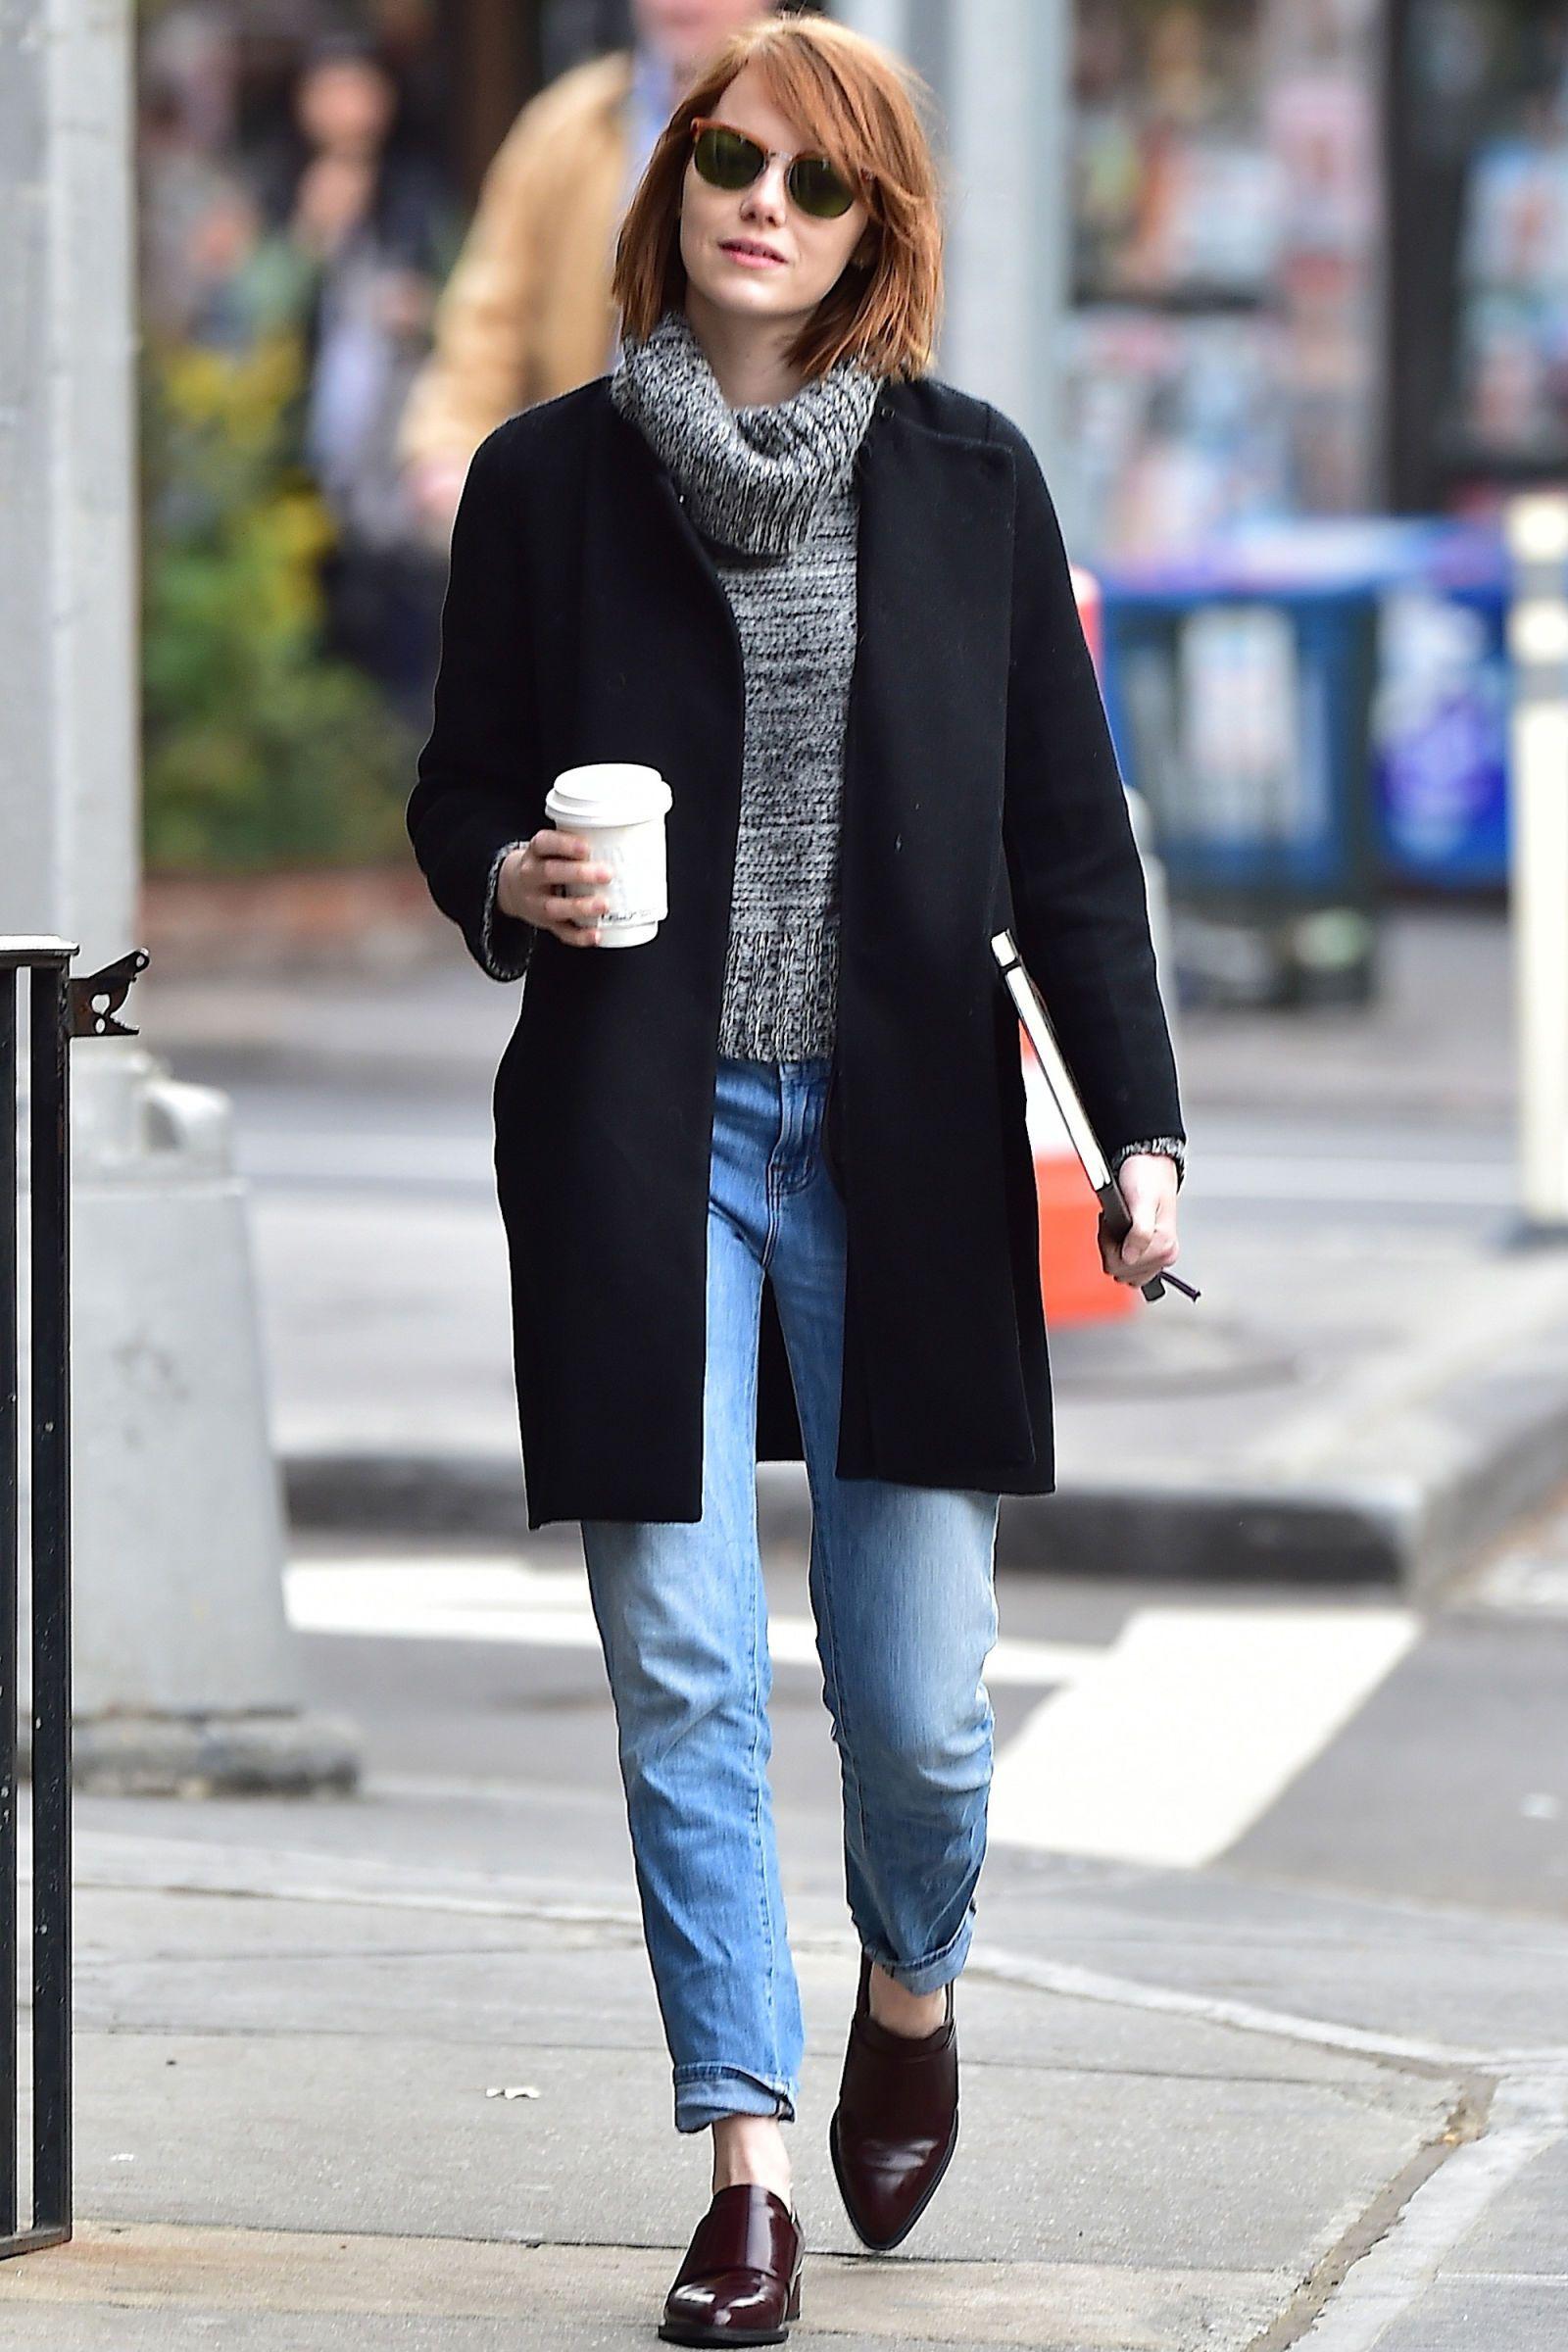 Emma Stone in the West Village on Oct. 31, 2014 in New York City.